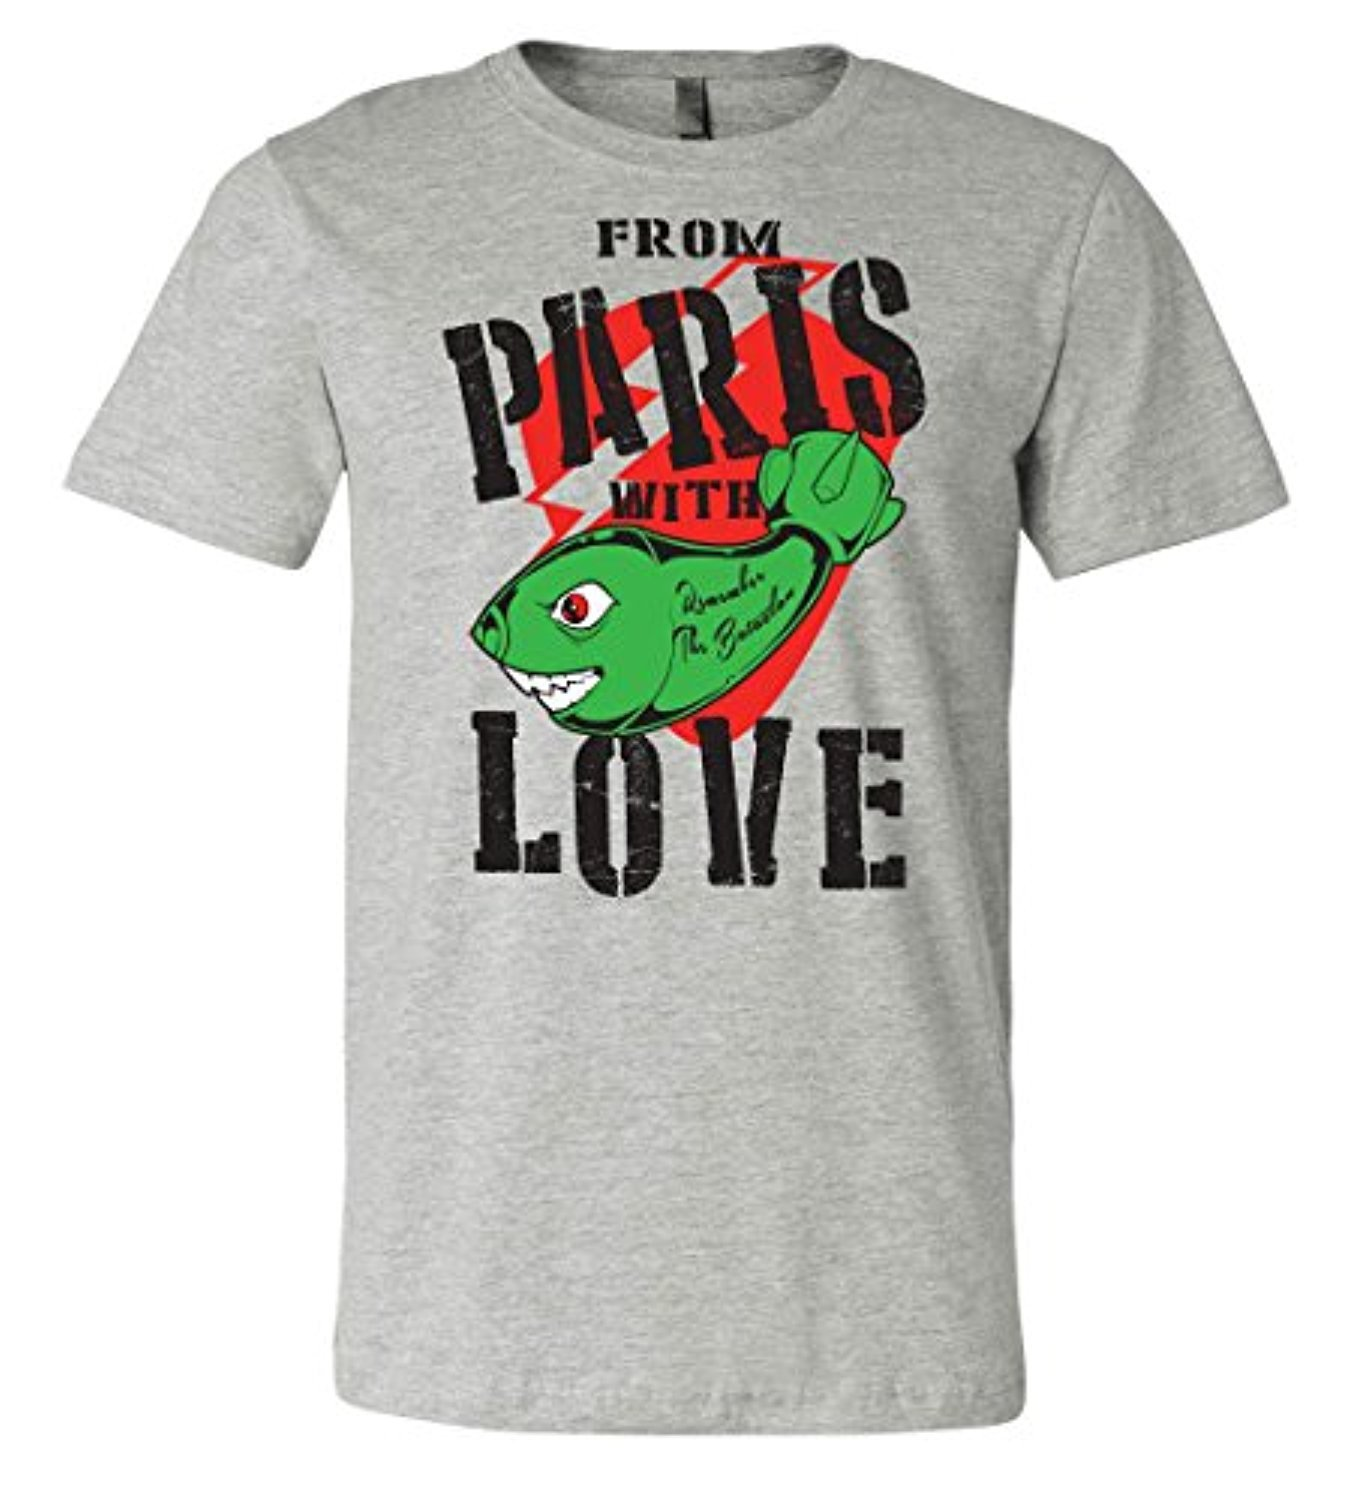 From paris with love shirt